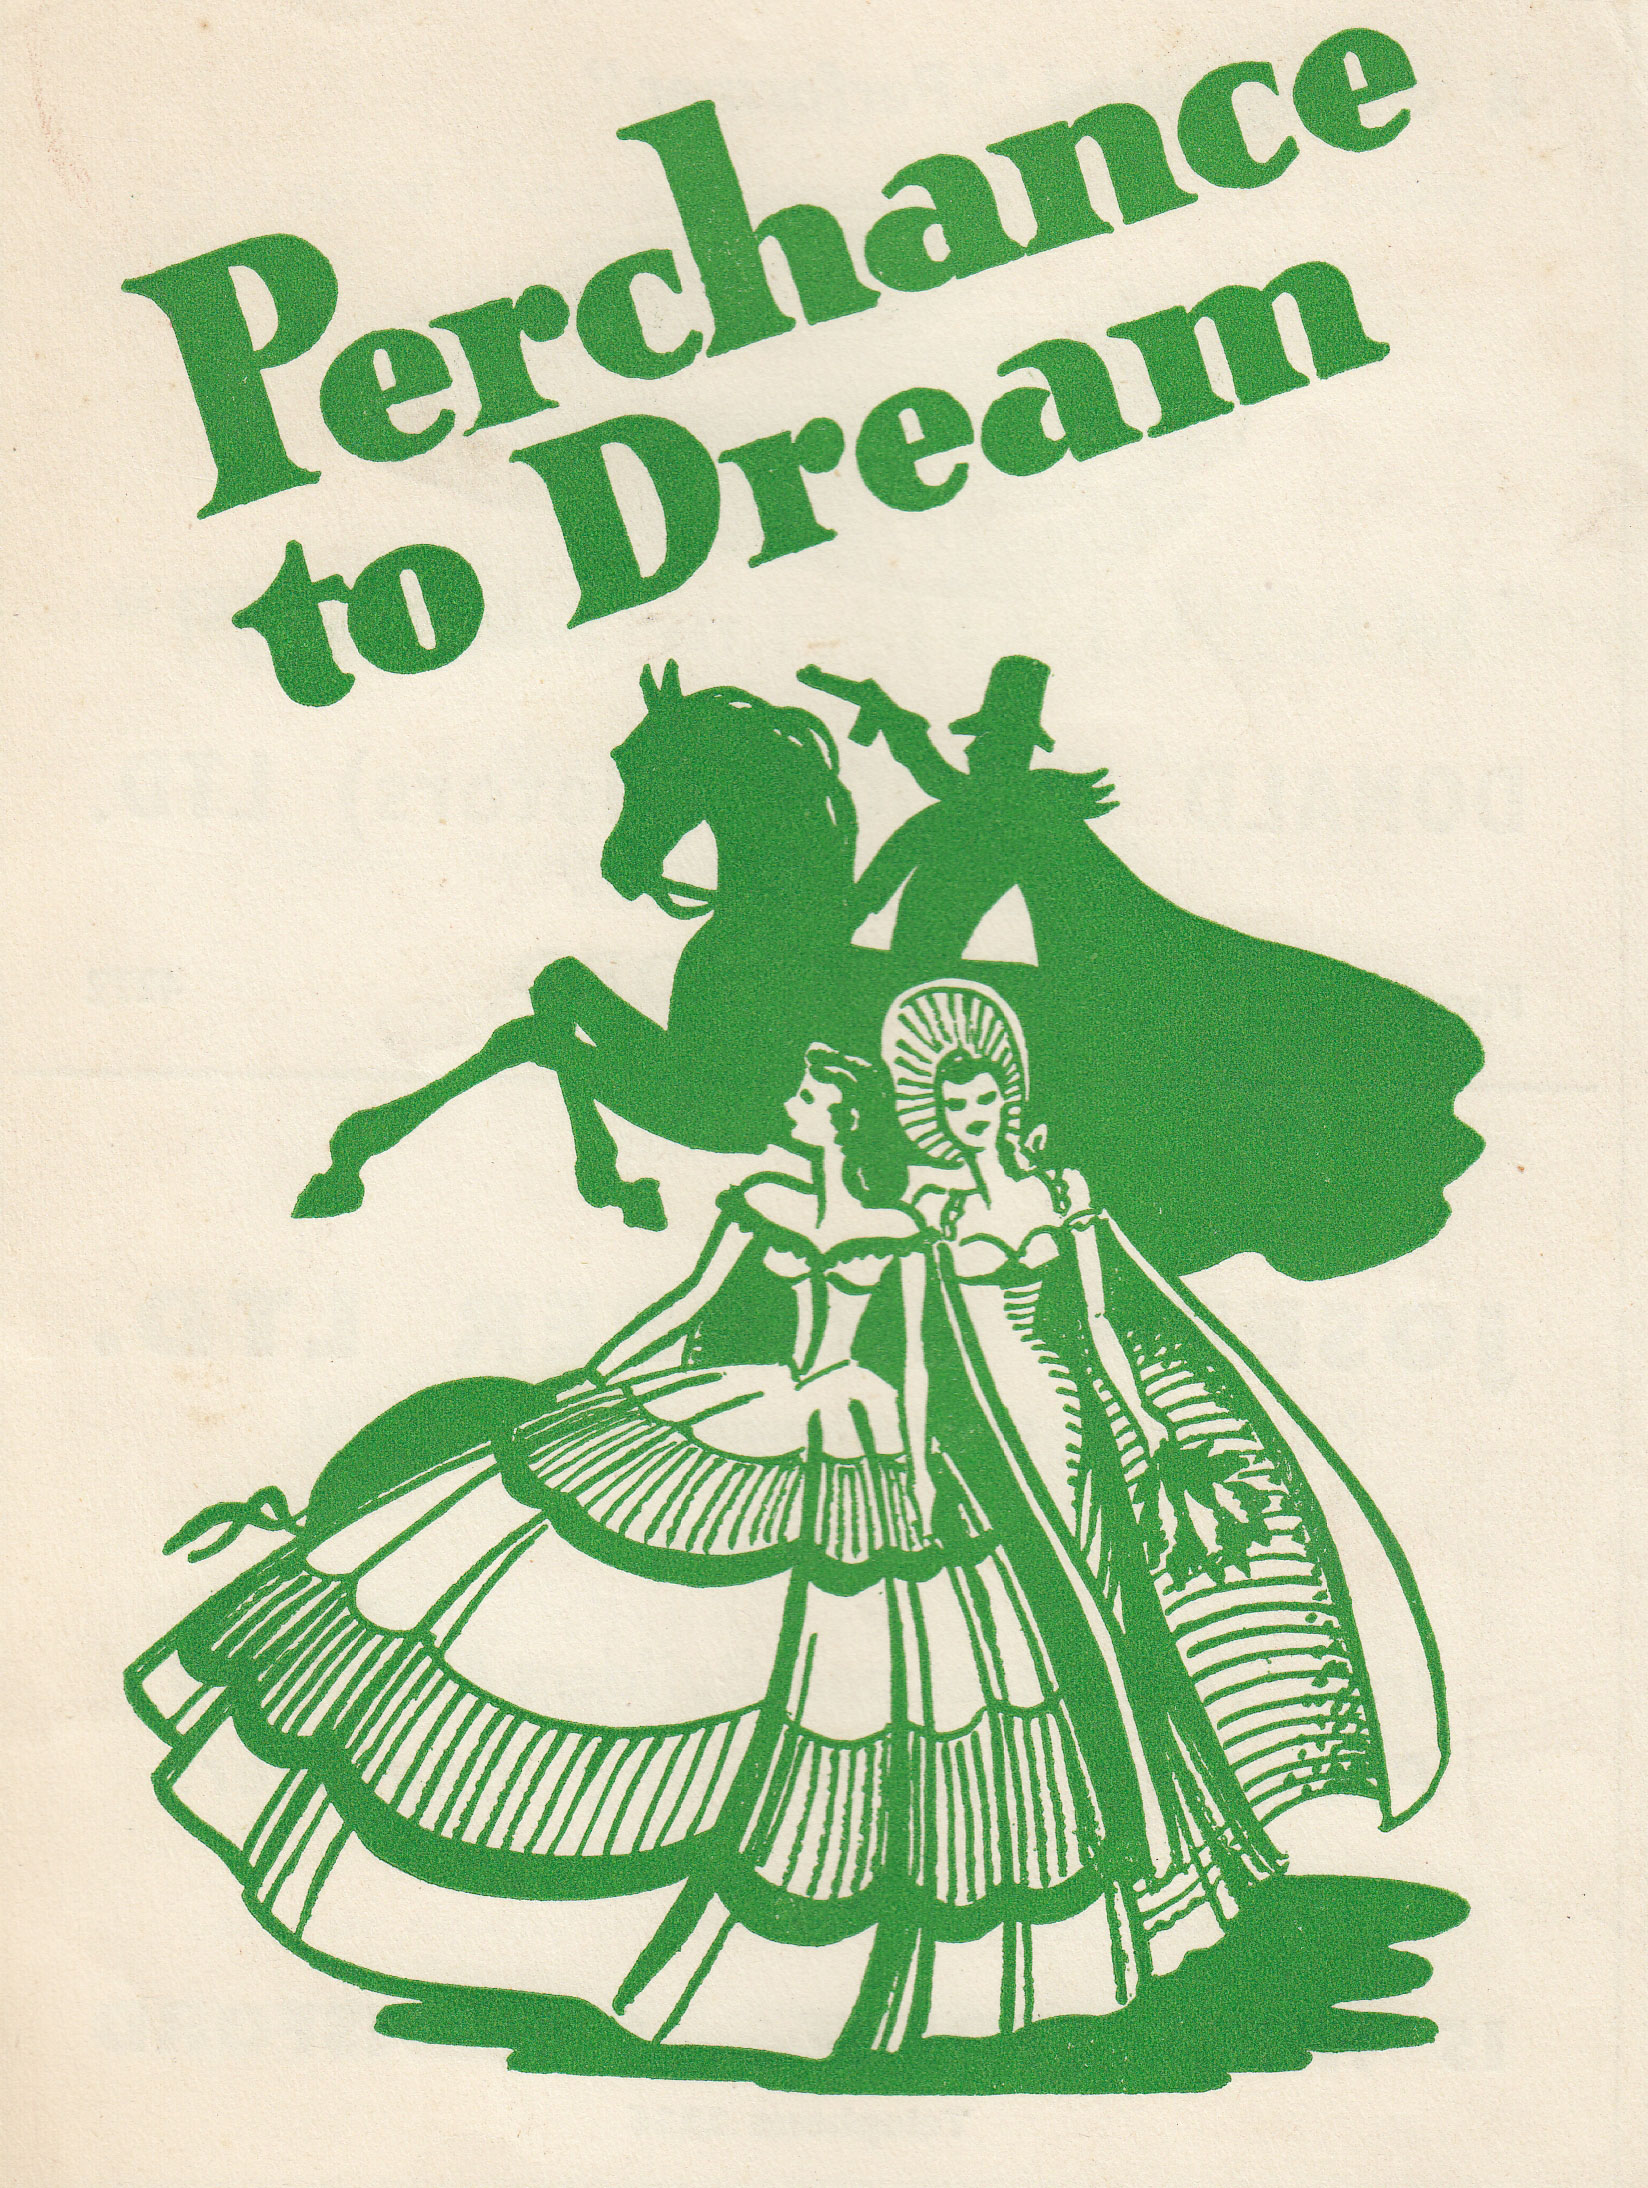 Perchance to Dream (1955)